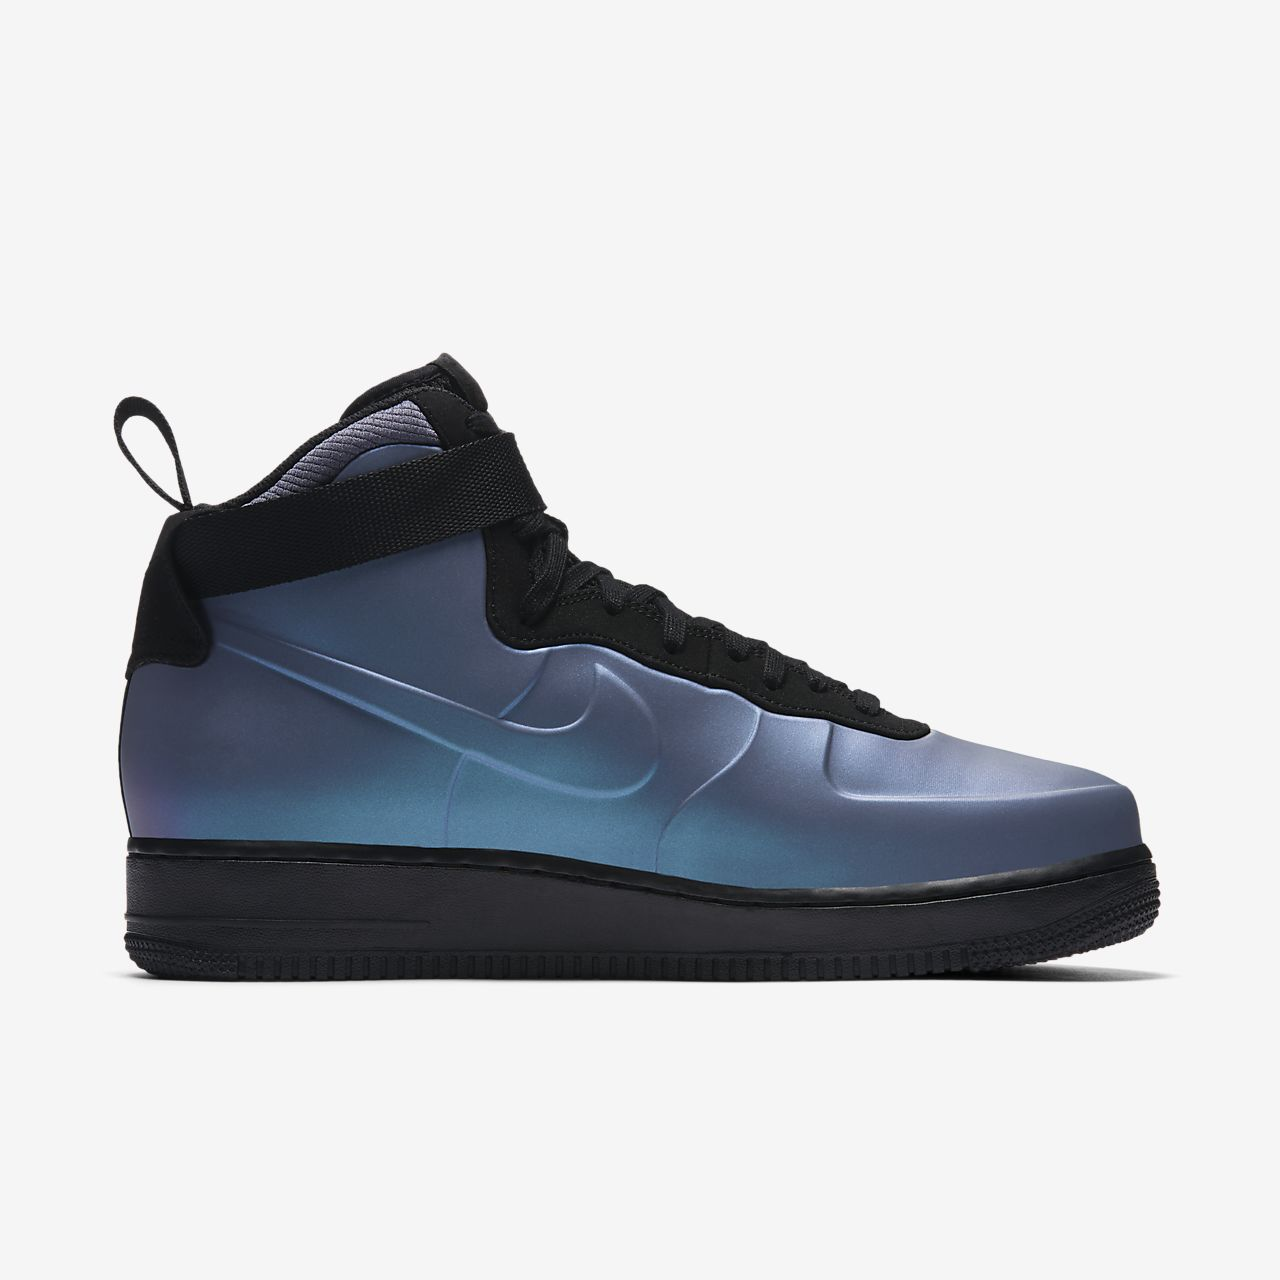 nike men's air force low 1 basketball shoe nz